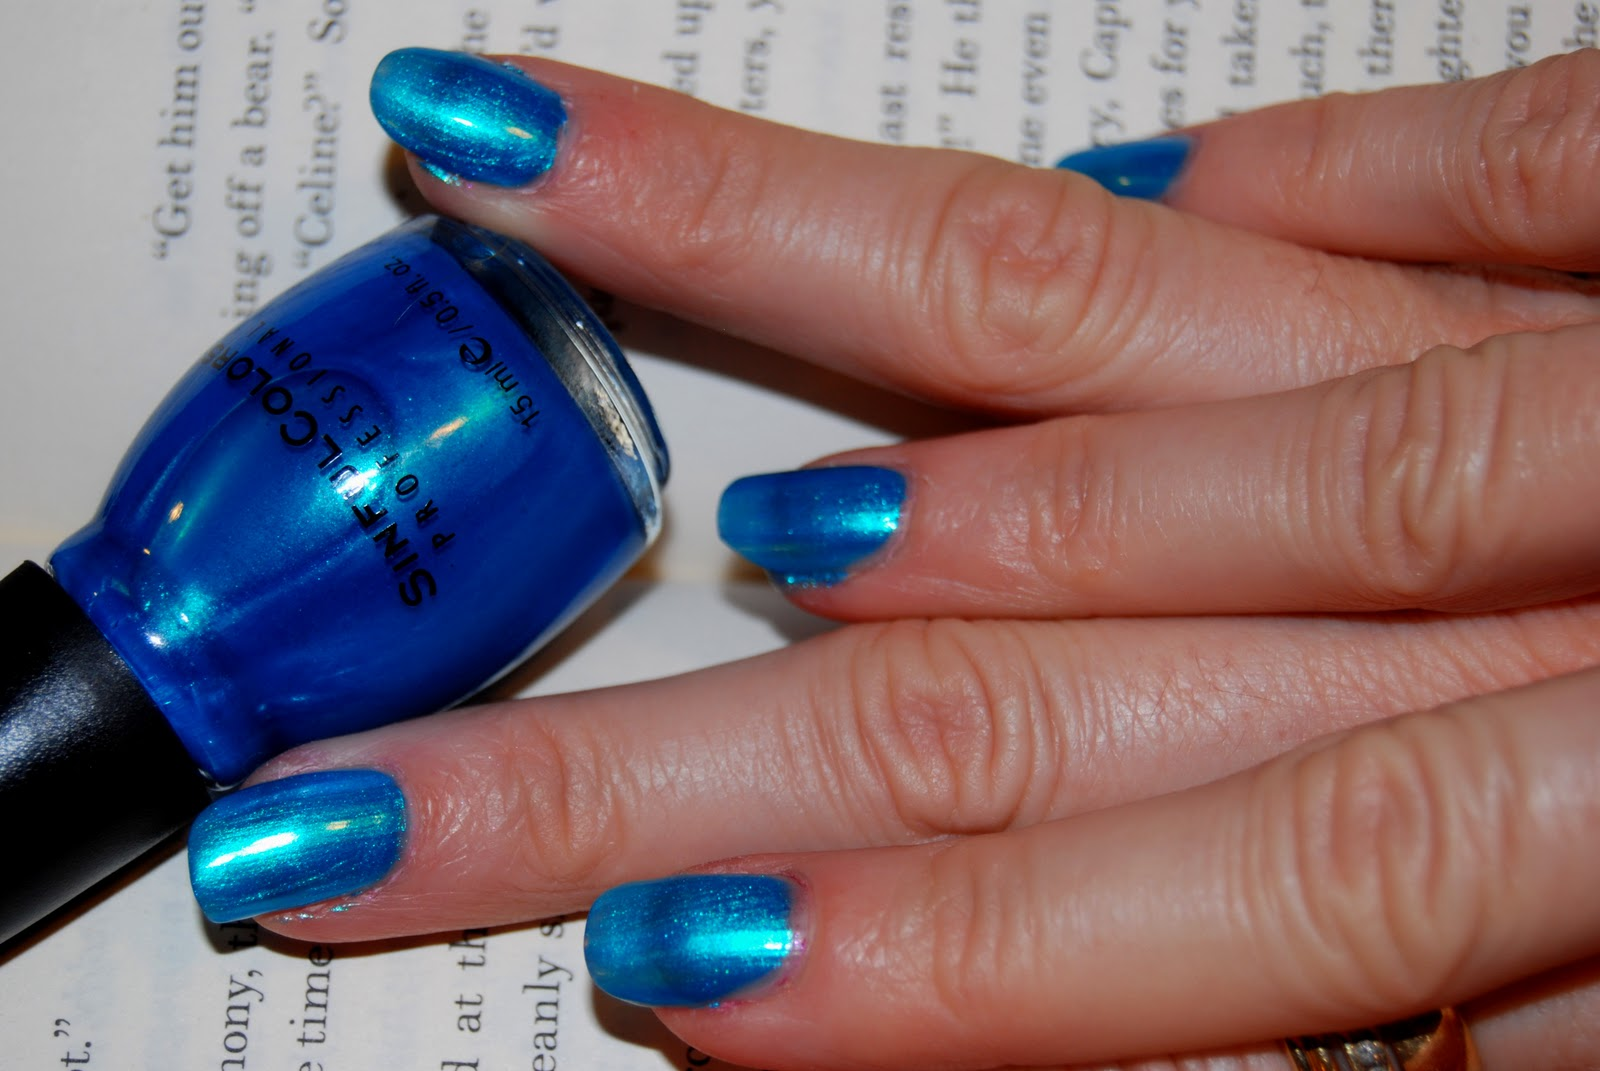 Mermaid Nails: Mermaid Blue with Sinful Colors in \'Love Nails\'